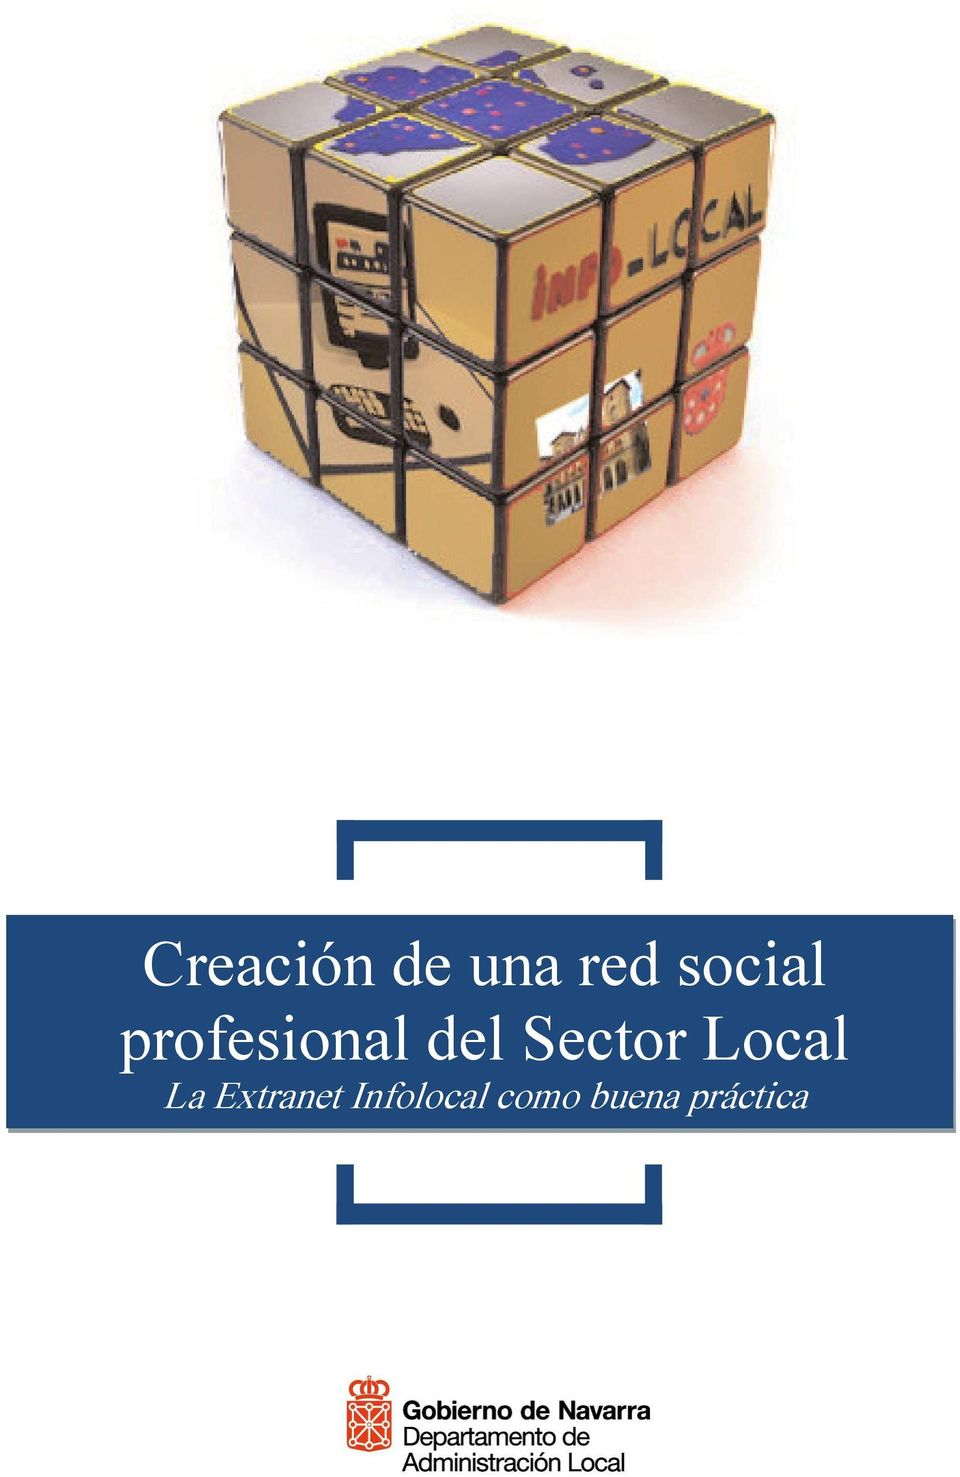 Sector Local La Extranet